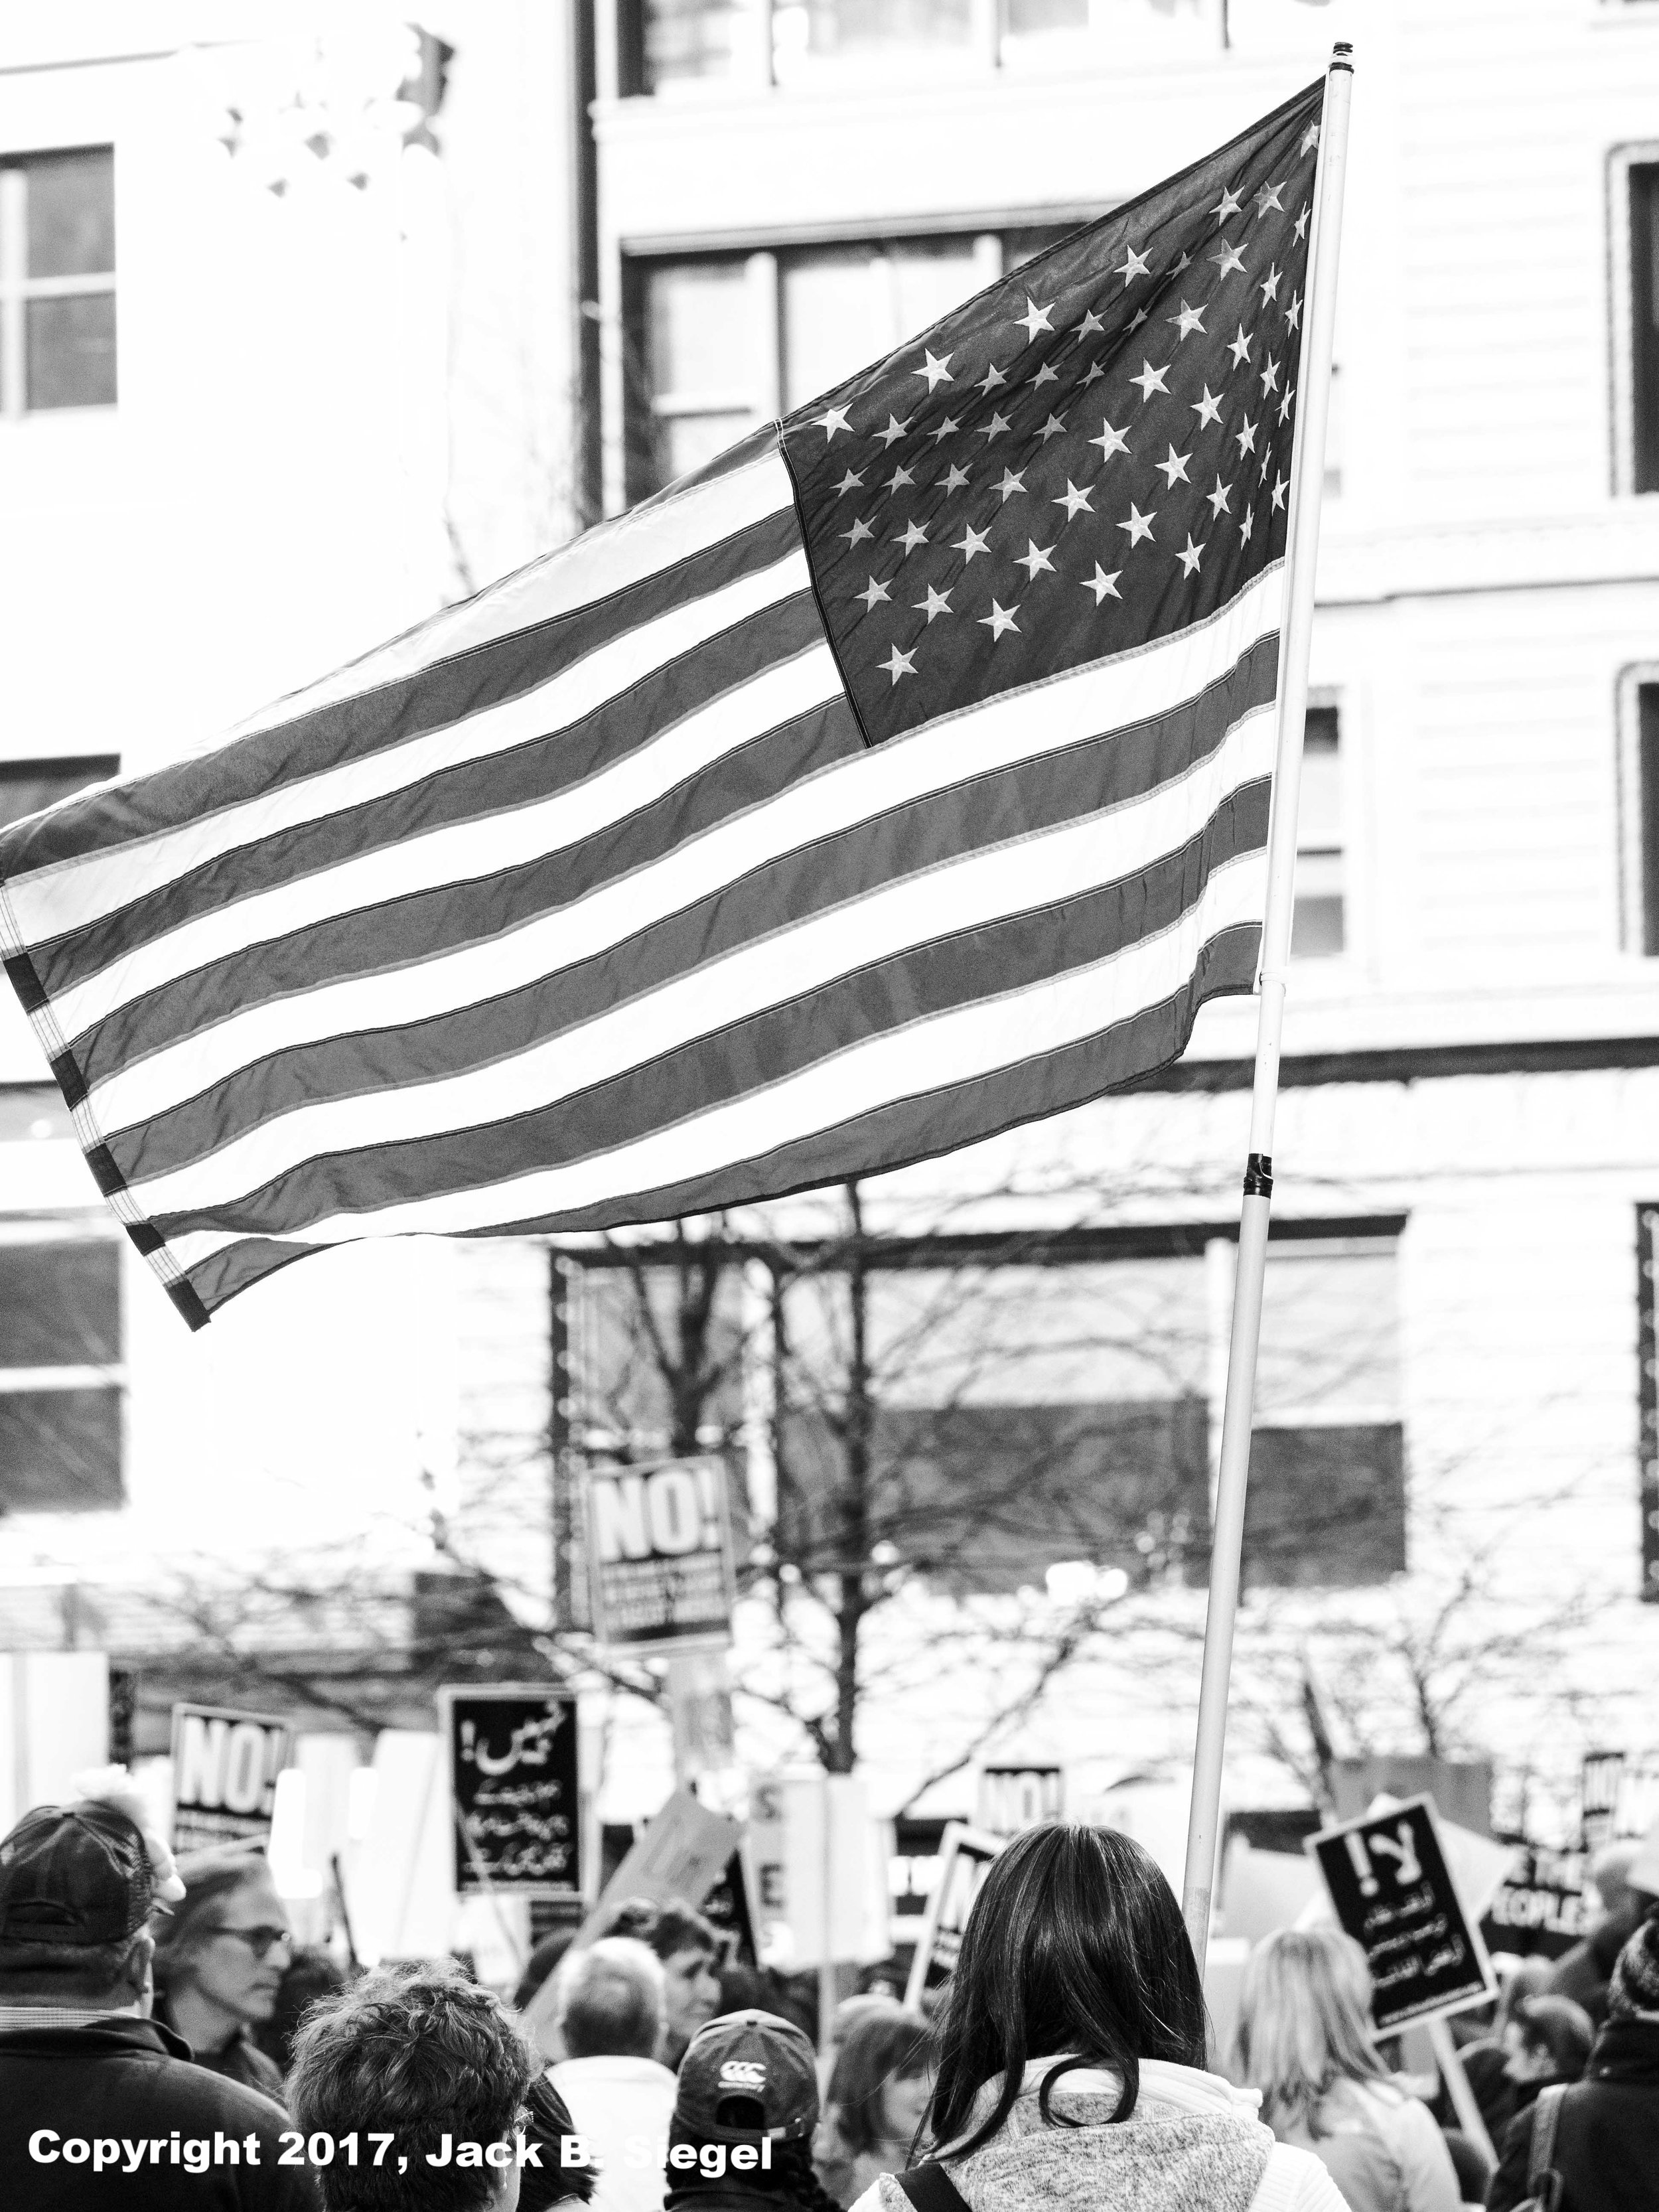 Patriotic Opposition: Hold That Flag High